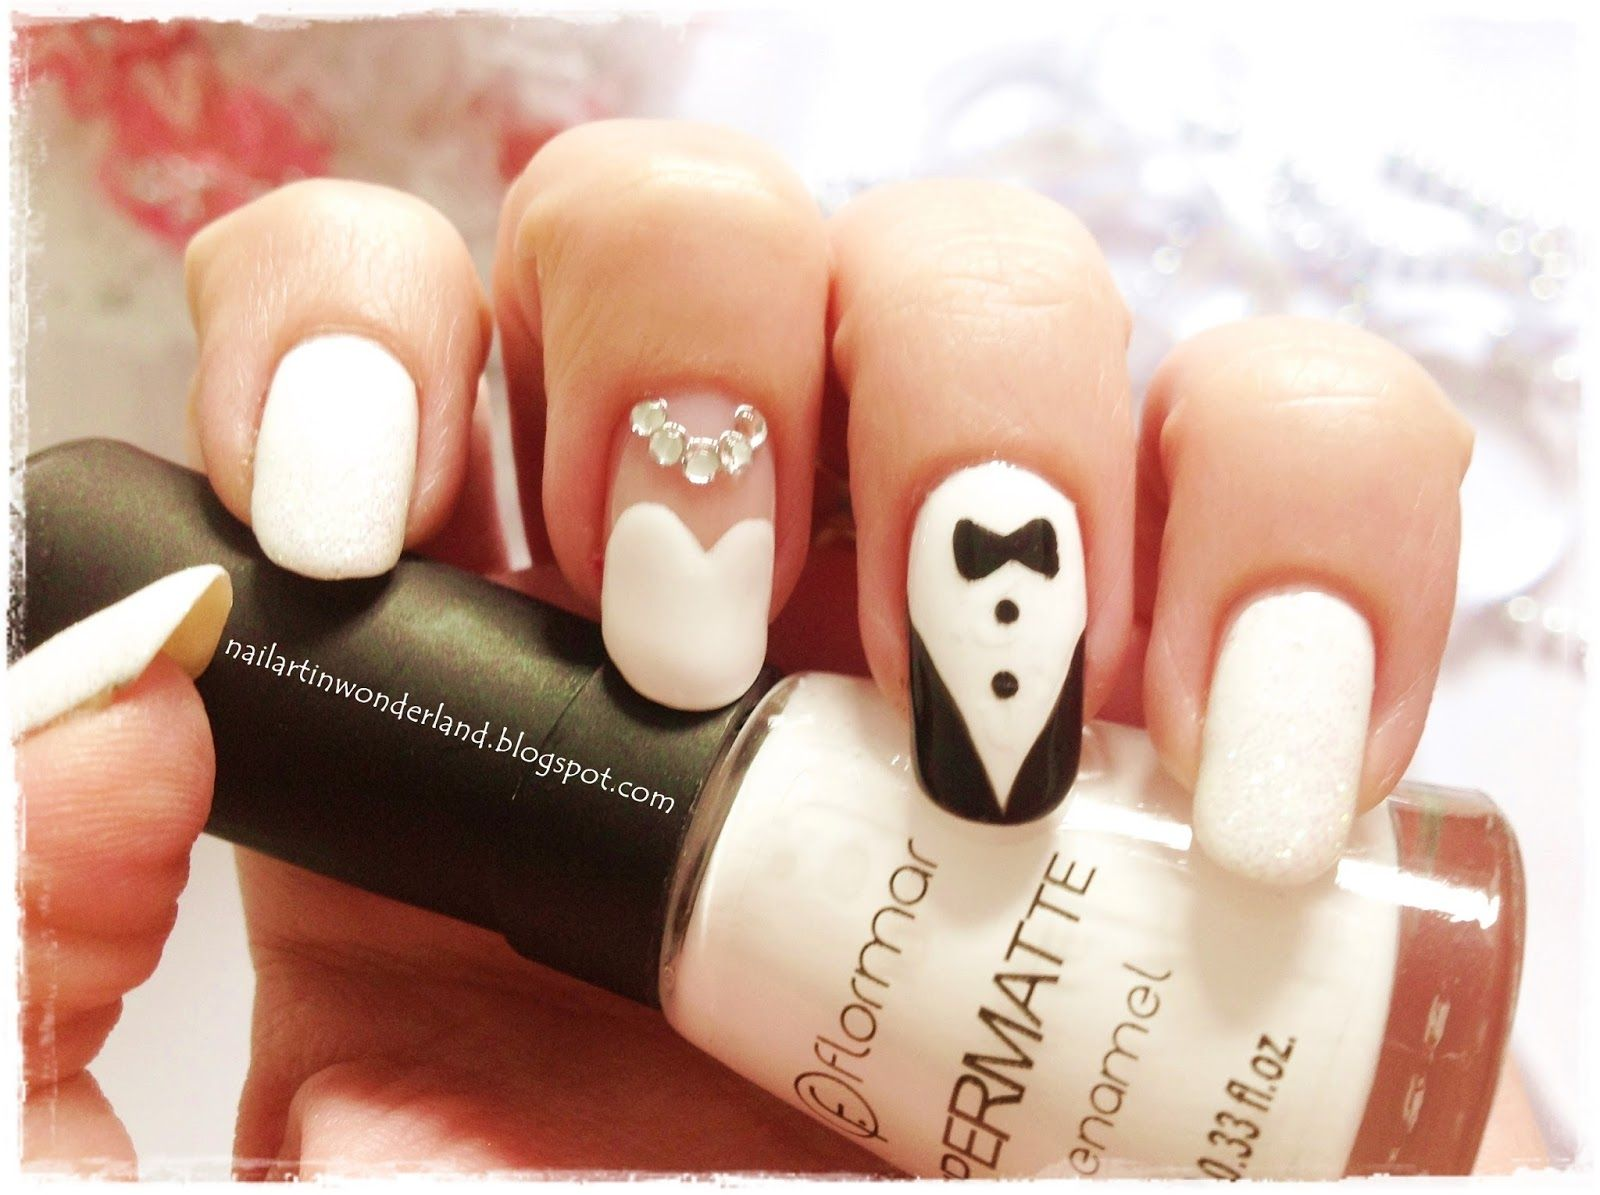 Wedding Nail Art with Bride and Groom http://nailartinwonderland ...